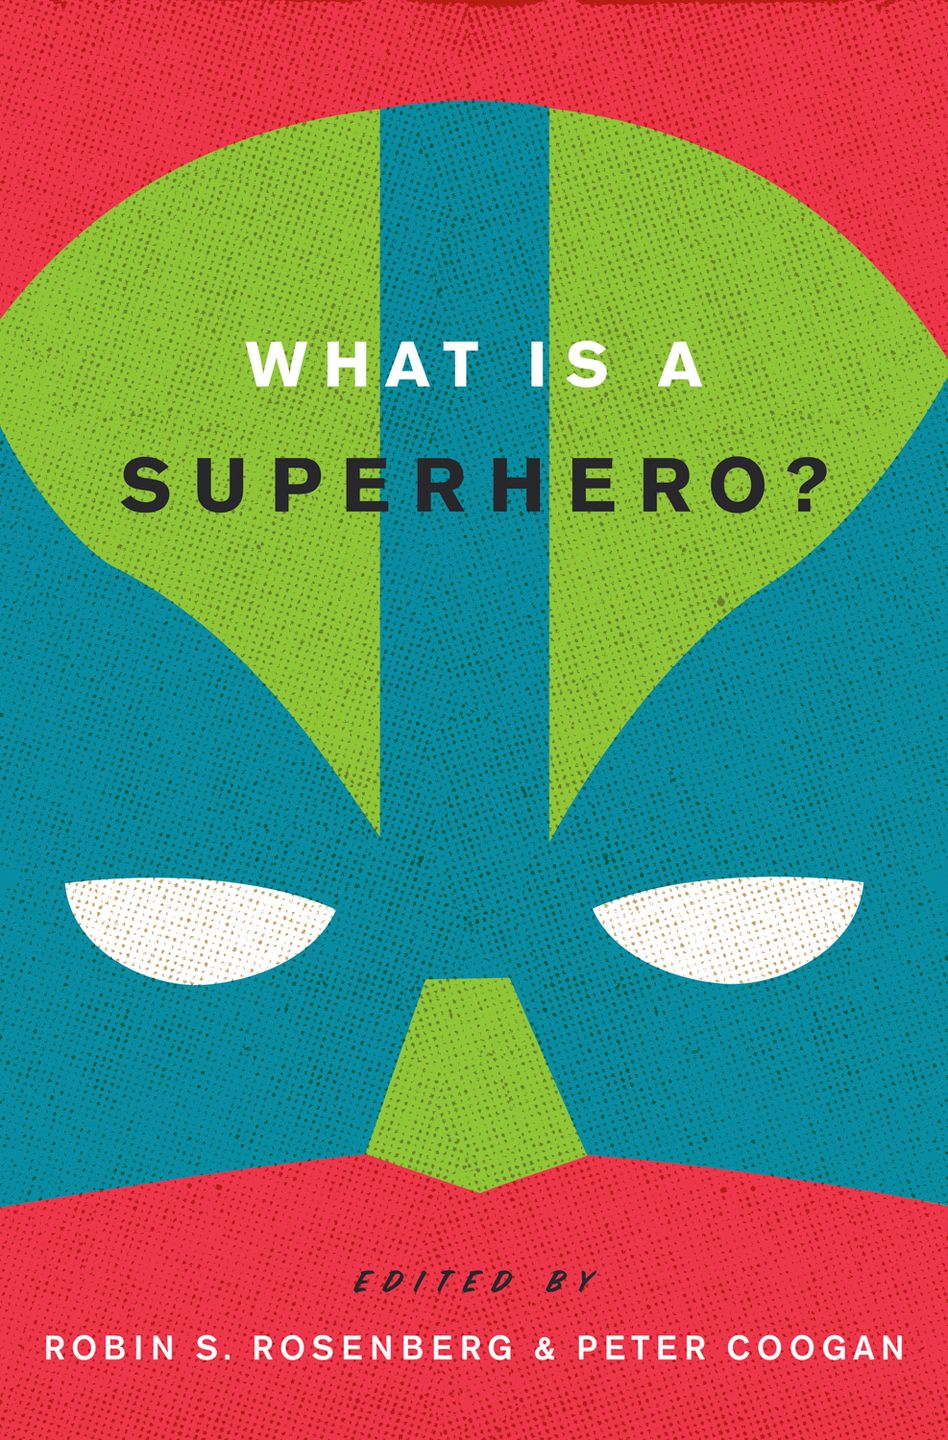 Robin Rosenberg's book on our fascination with superheroes